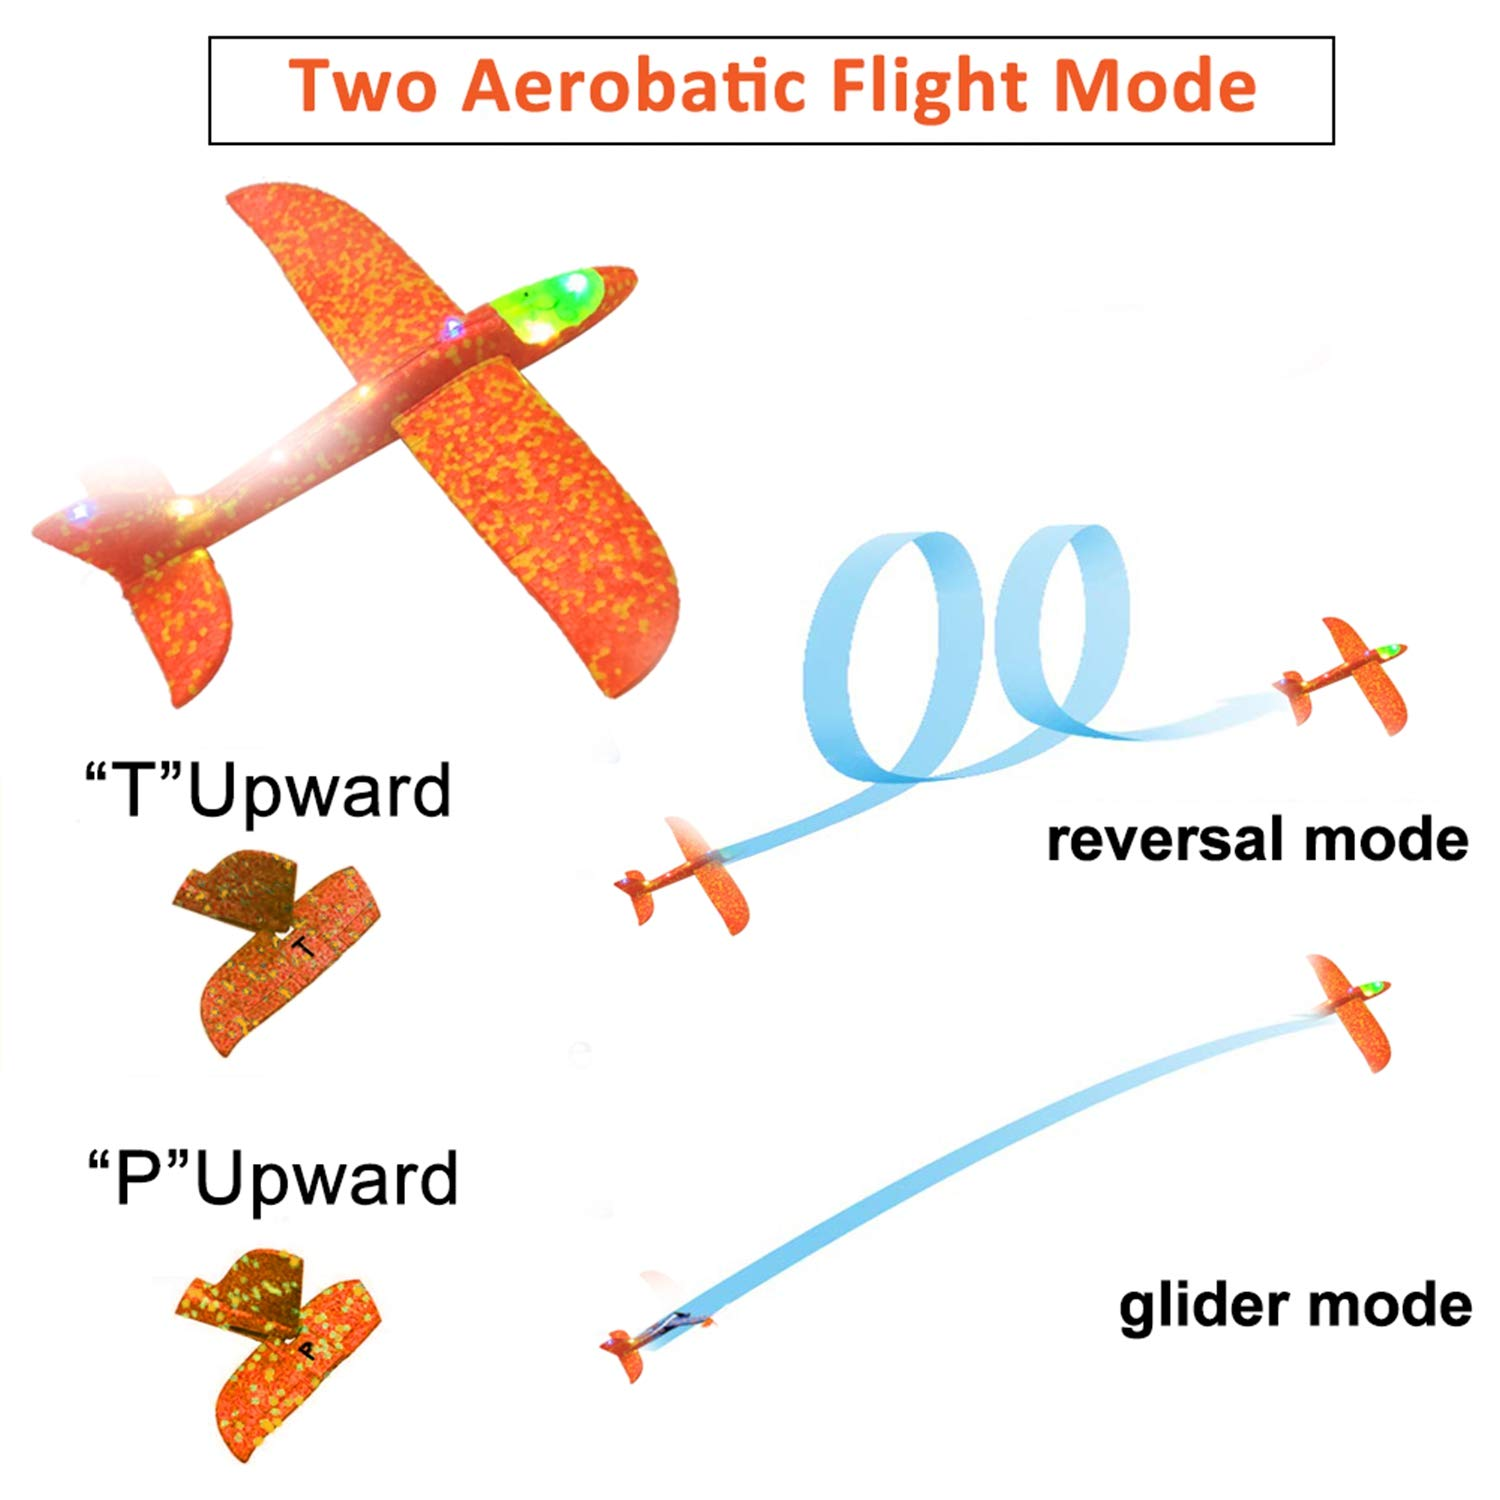 Airplane Toys Throwing Foam Plane, 13.5'' Inch LED Light Up Glider Airplane Model Toy with Dual Flight Mode Challenging Outdoor Plane Jet Sports Game Flying Toys Gift for Kids Toddlers Teens (2 Pack) by AMENON (Image #1)